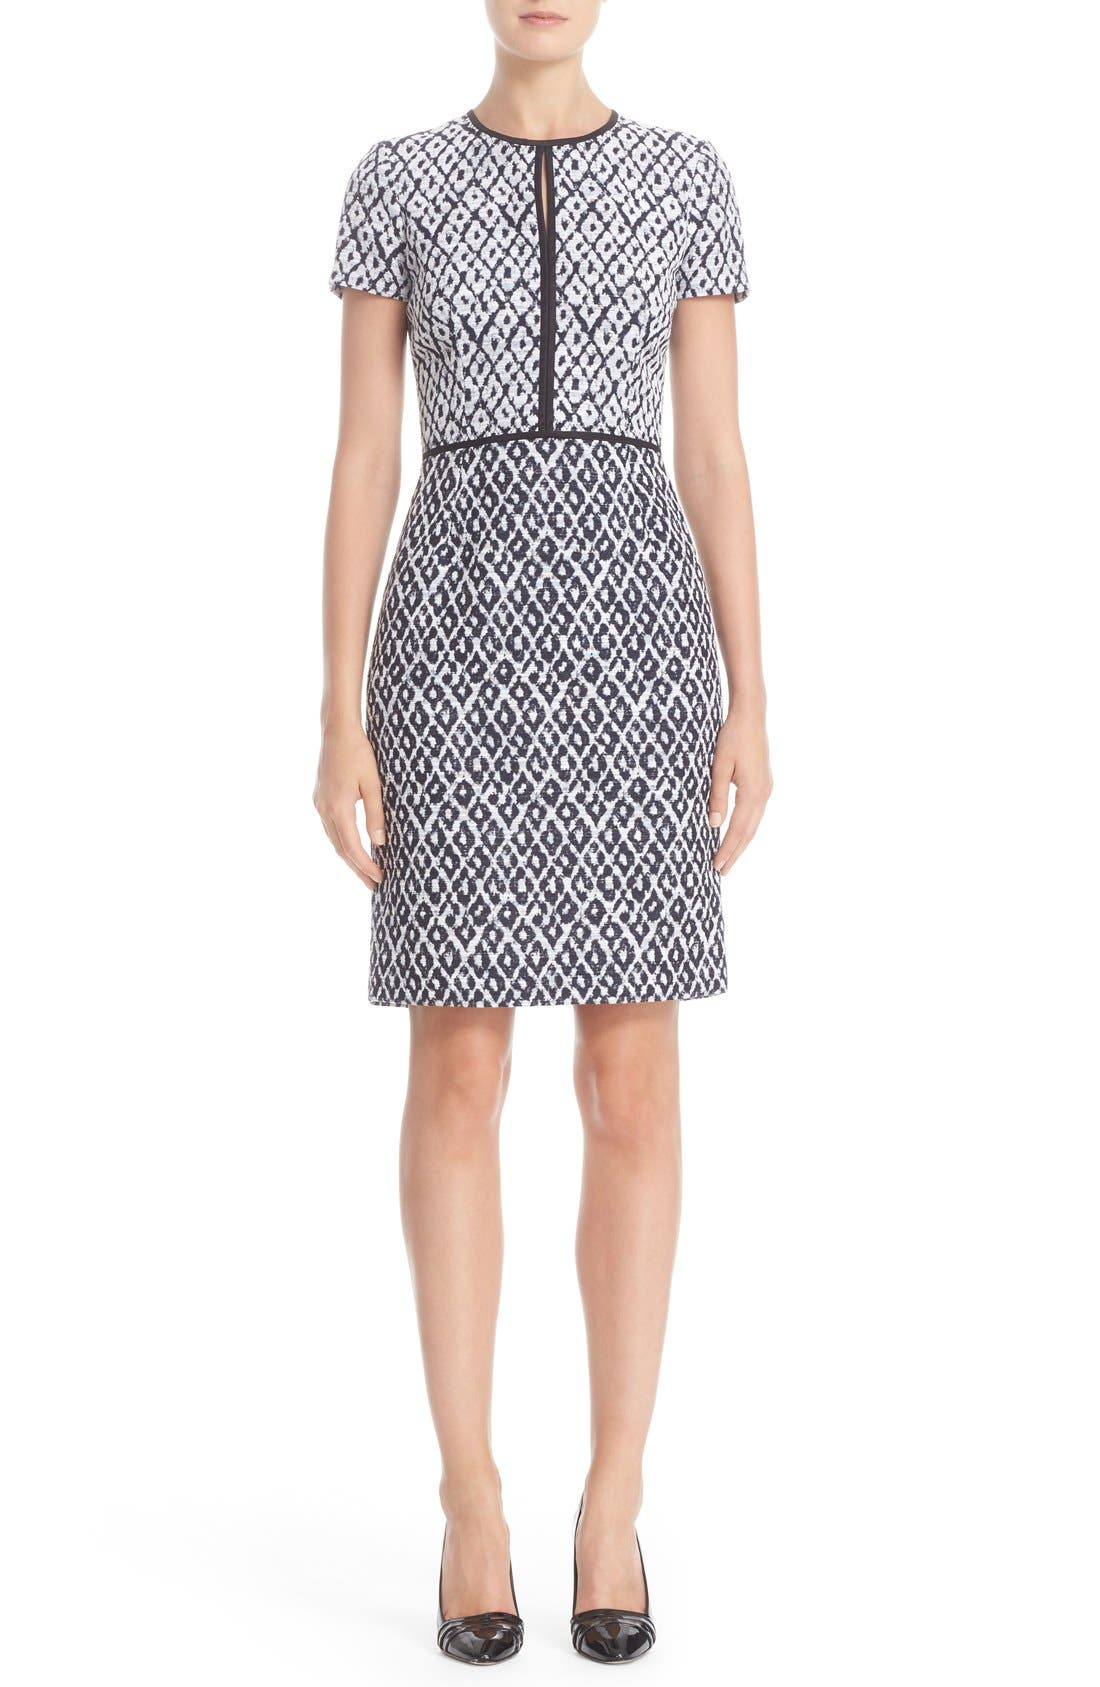 OSCAR DE LA RENTA Diamond Jacquard Keyhole Dress